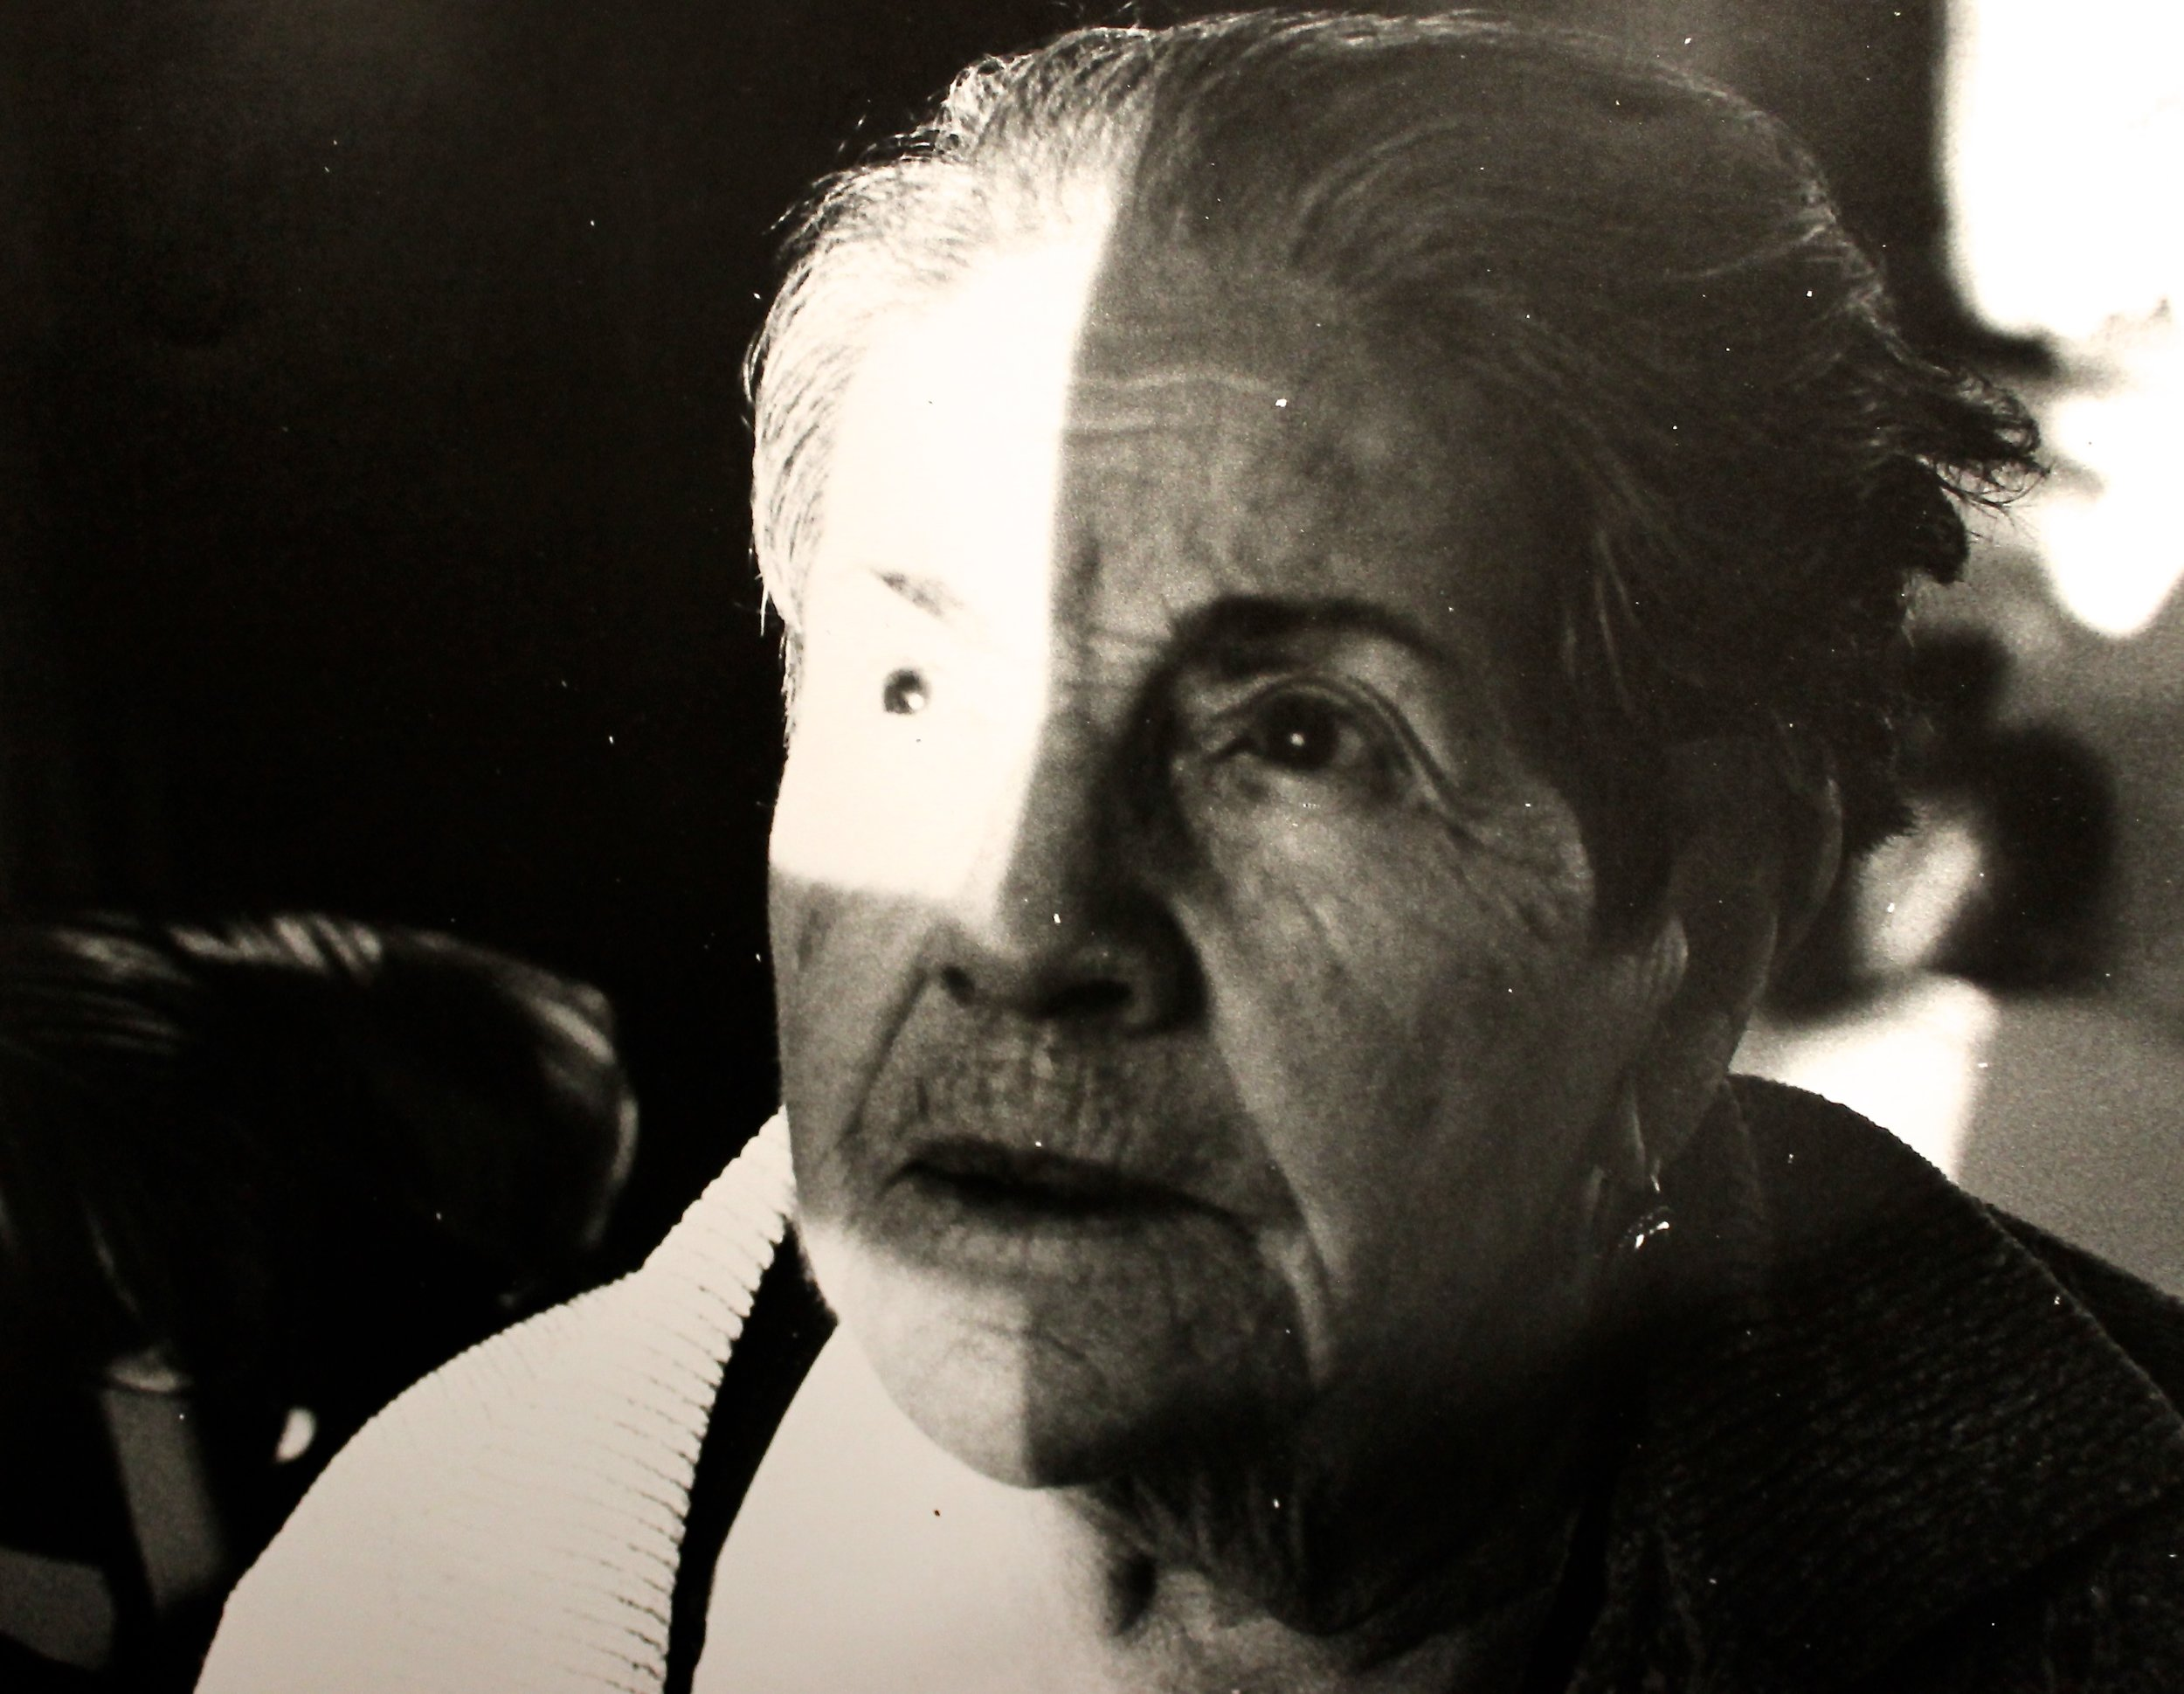 My grandmother Odecta Canal, thinking things she cannot articulate.